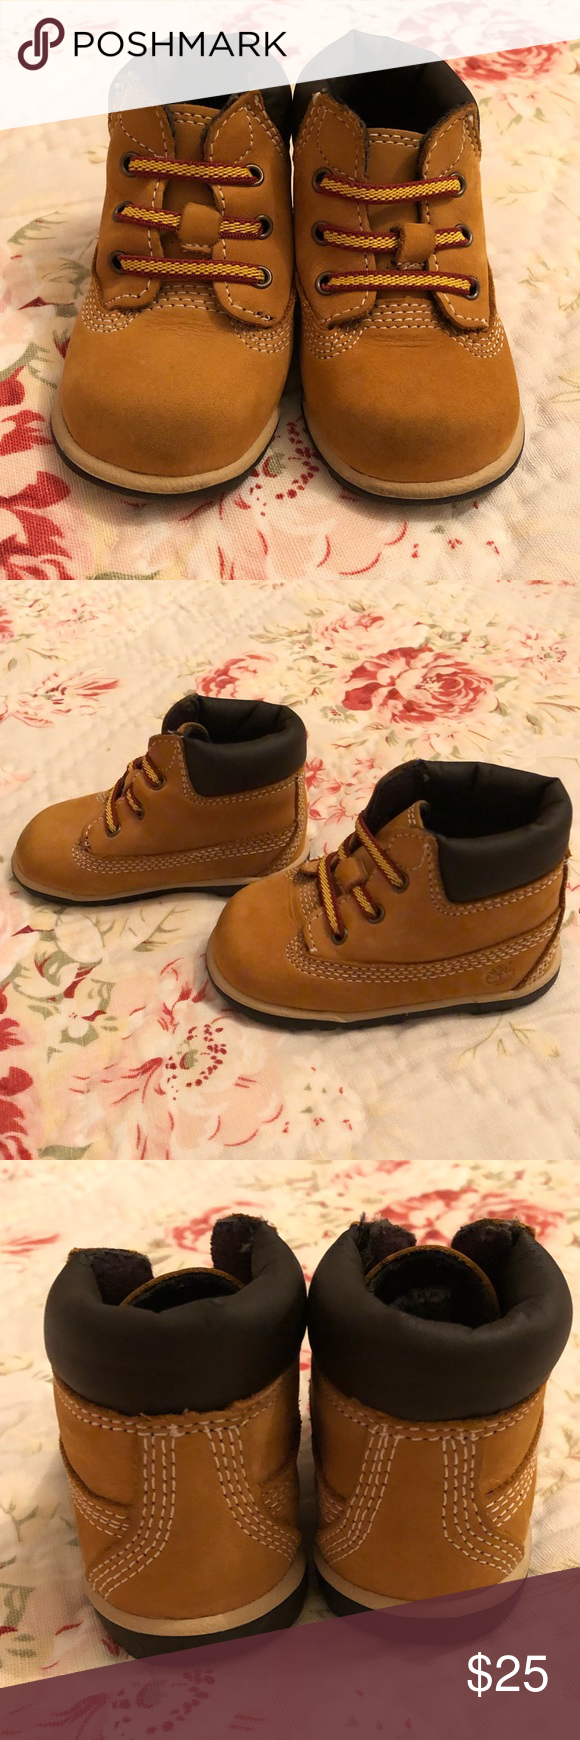 TIMBERLAND WHEAT INFANT BABY BOOTS SIZE